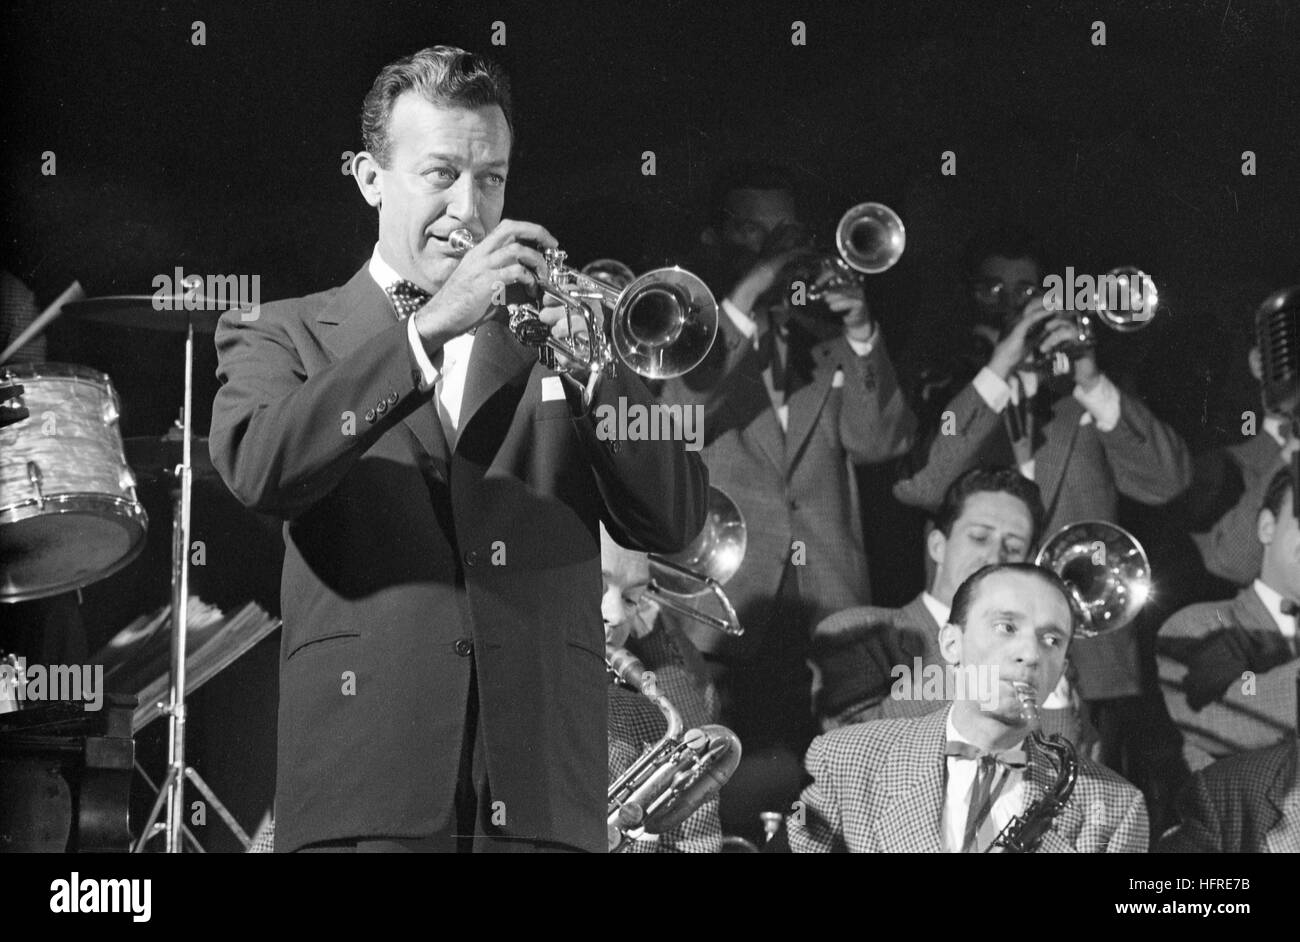 Harry James, performing with the Harry James band, at the Band Box in New York City. - Stock Image